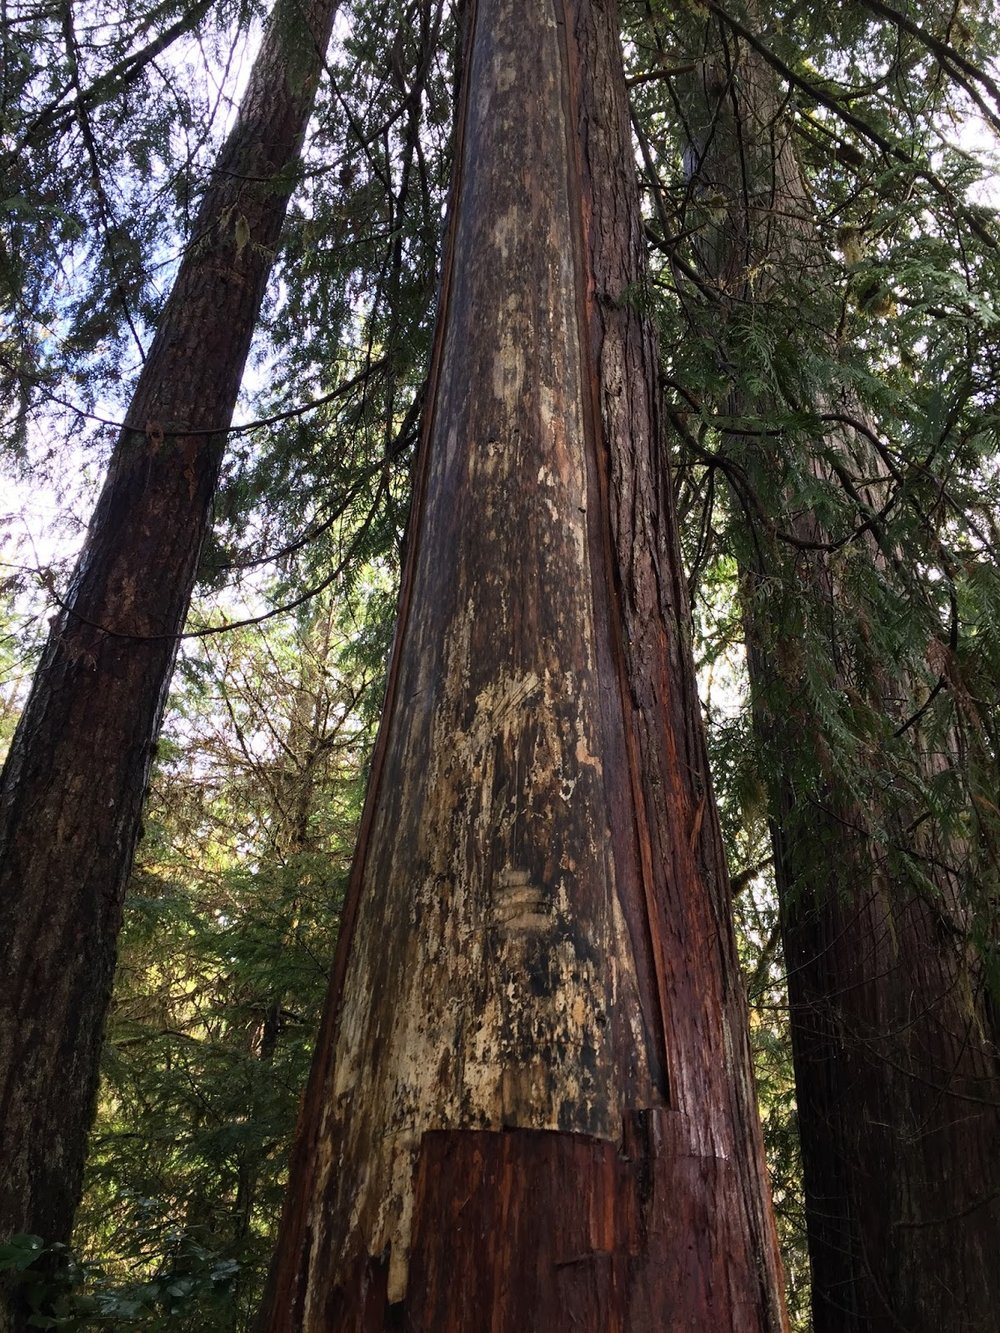 A sacred cedar tree with some of the bark removed  in a respectful way